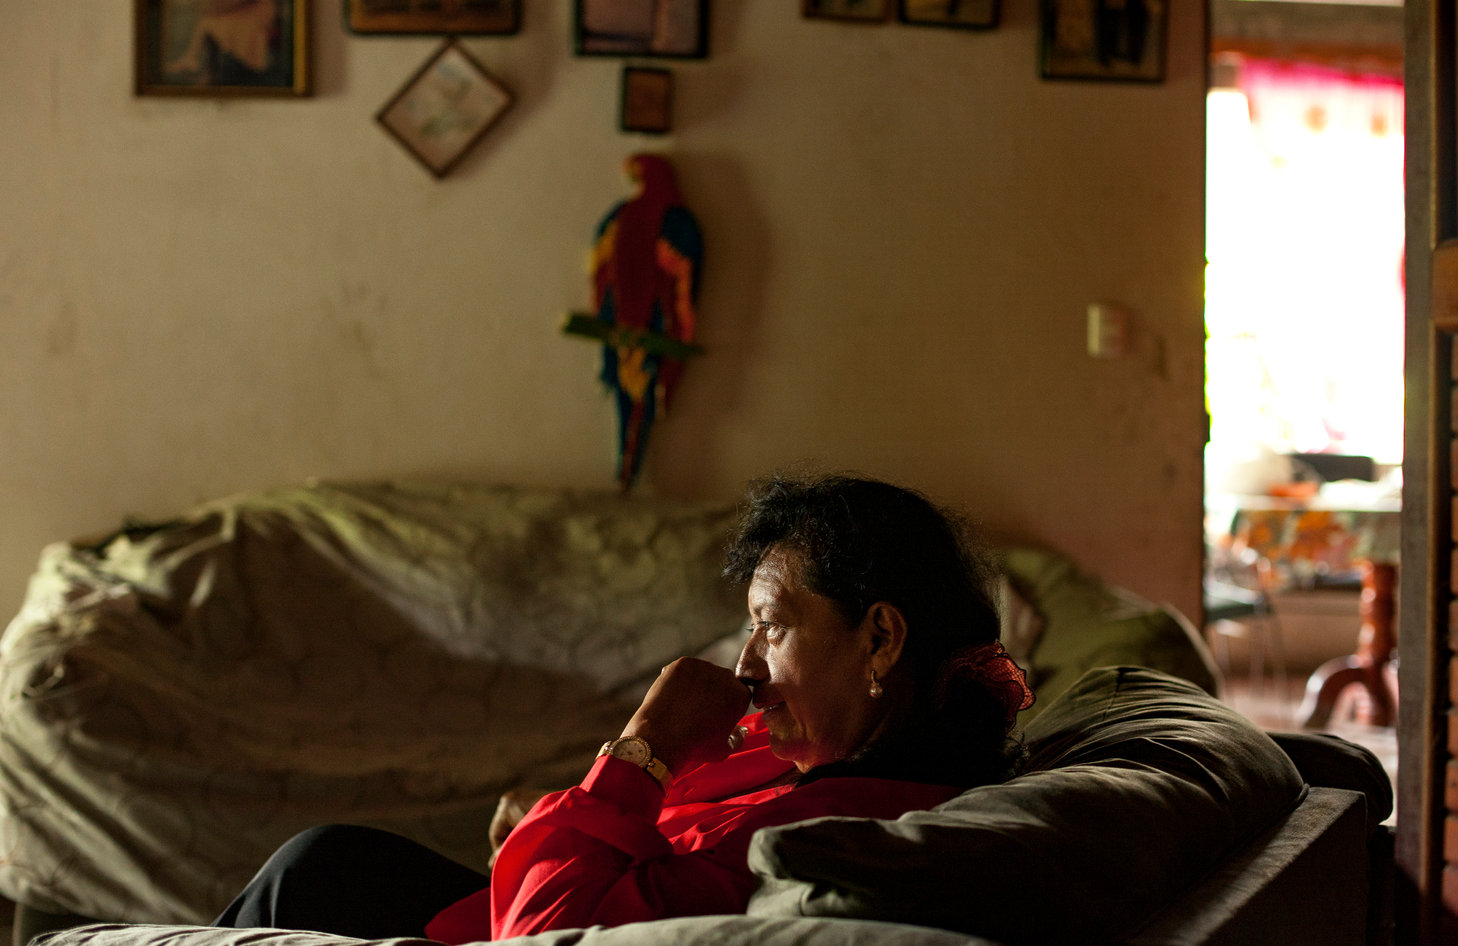 Yolanda has lived in Paso Canoas for the past 20 years. In her living room, she speaks about her experience the increase of migrants over the past six months.